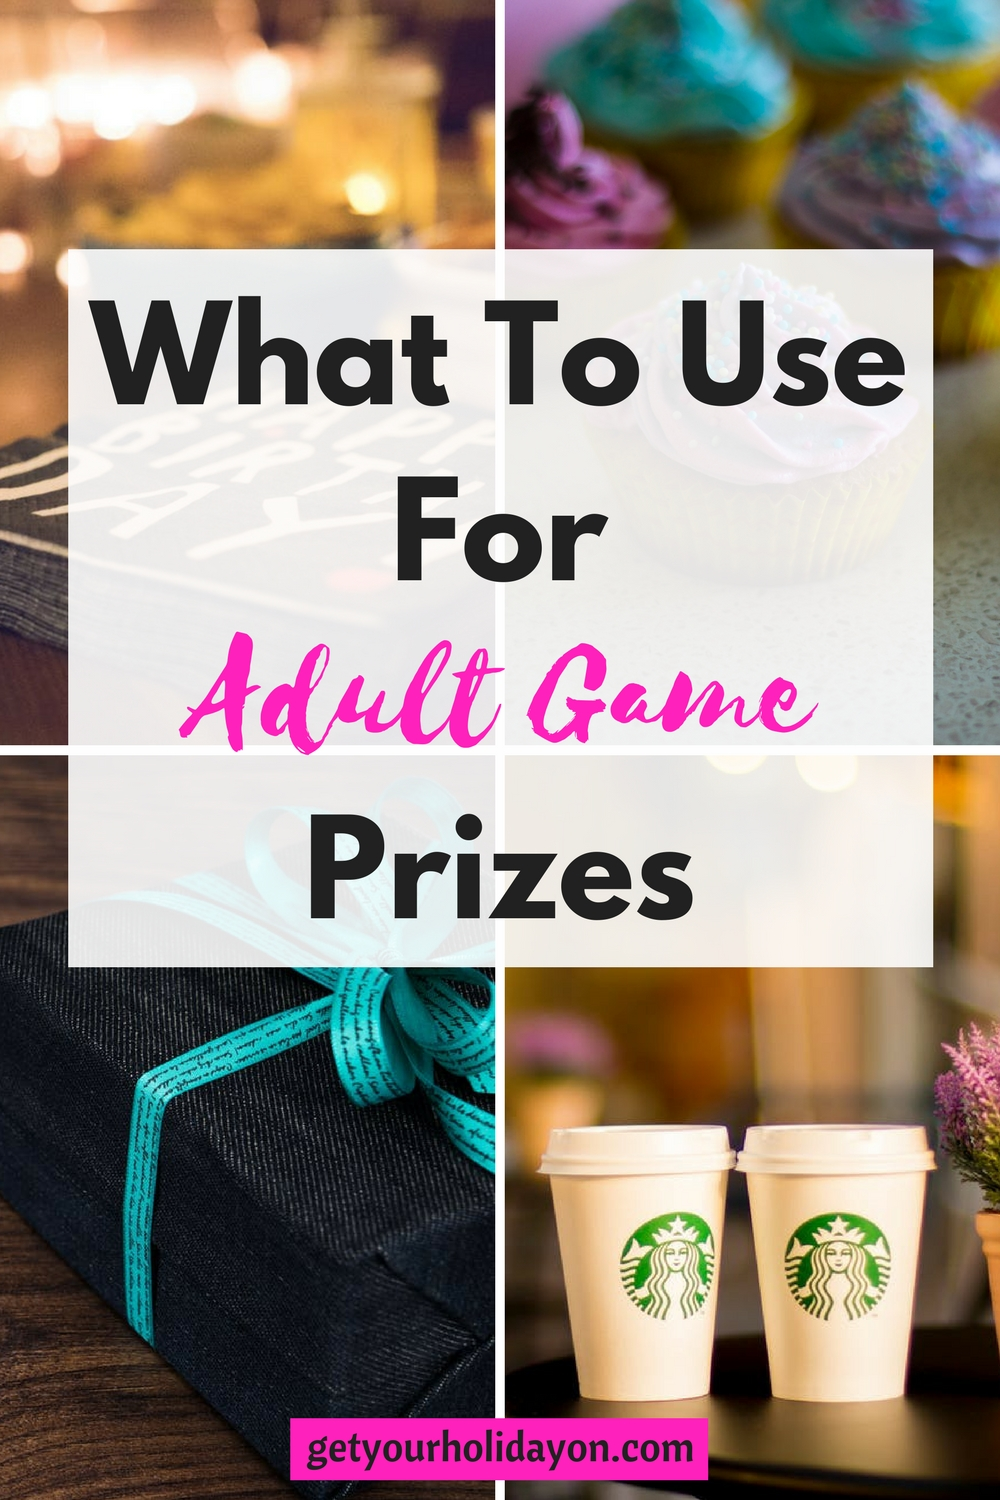 What To Use For Adult Game Prizes Get Your Holiday On